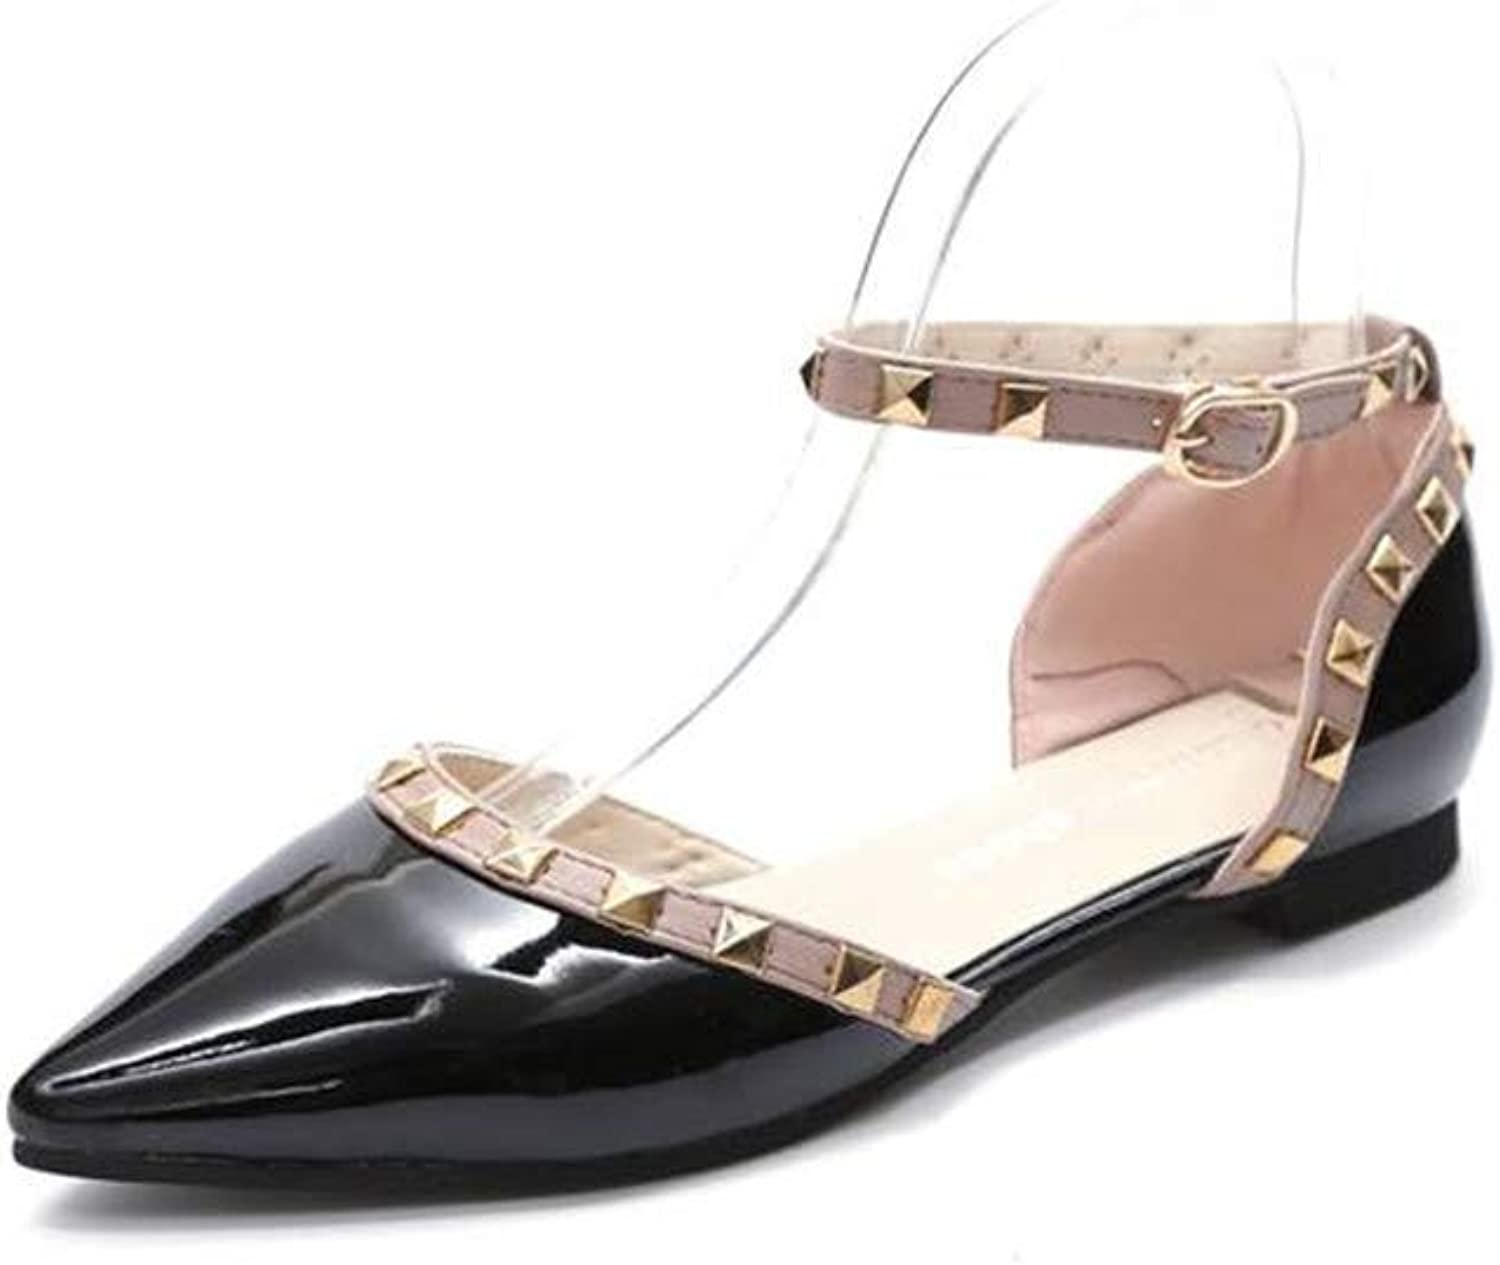 NingYu Women Flats shoes Rivet Pointed Toe Patent Leather Gladiator Sexy Stud Flat shoes